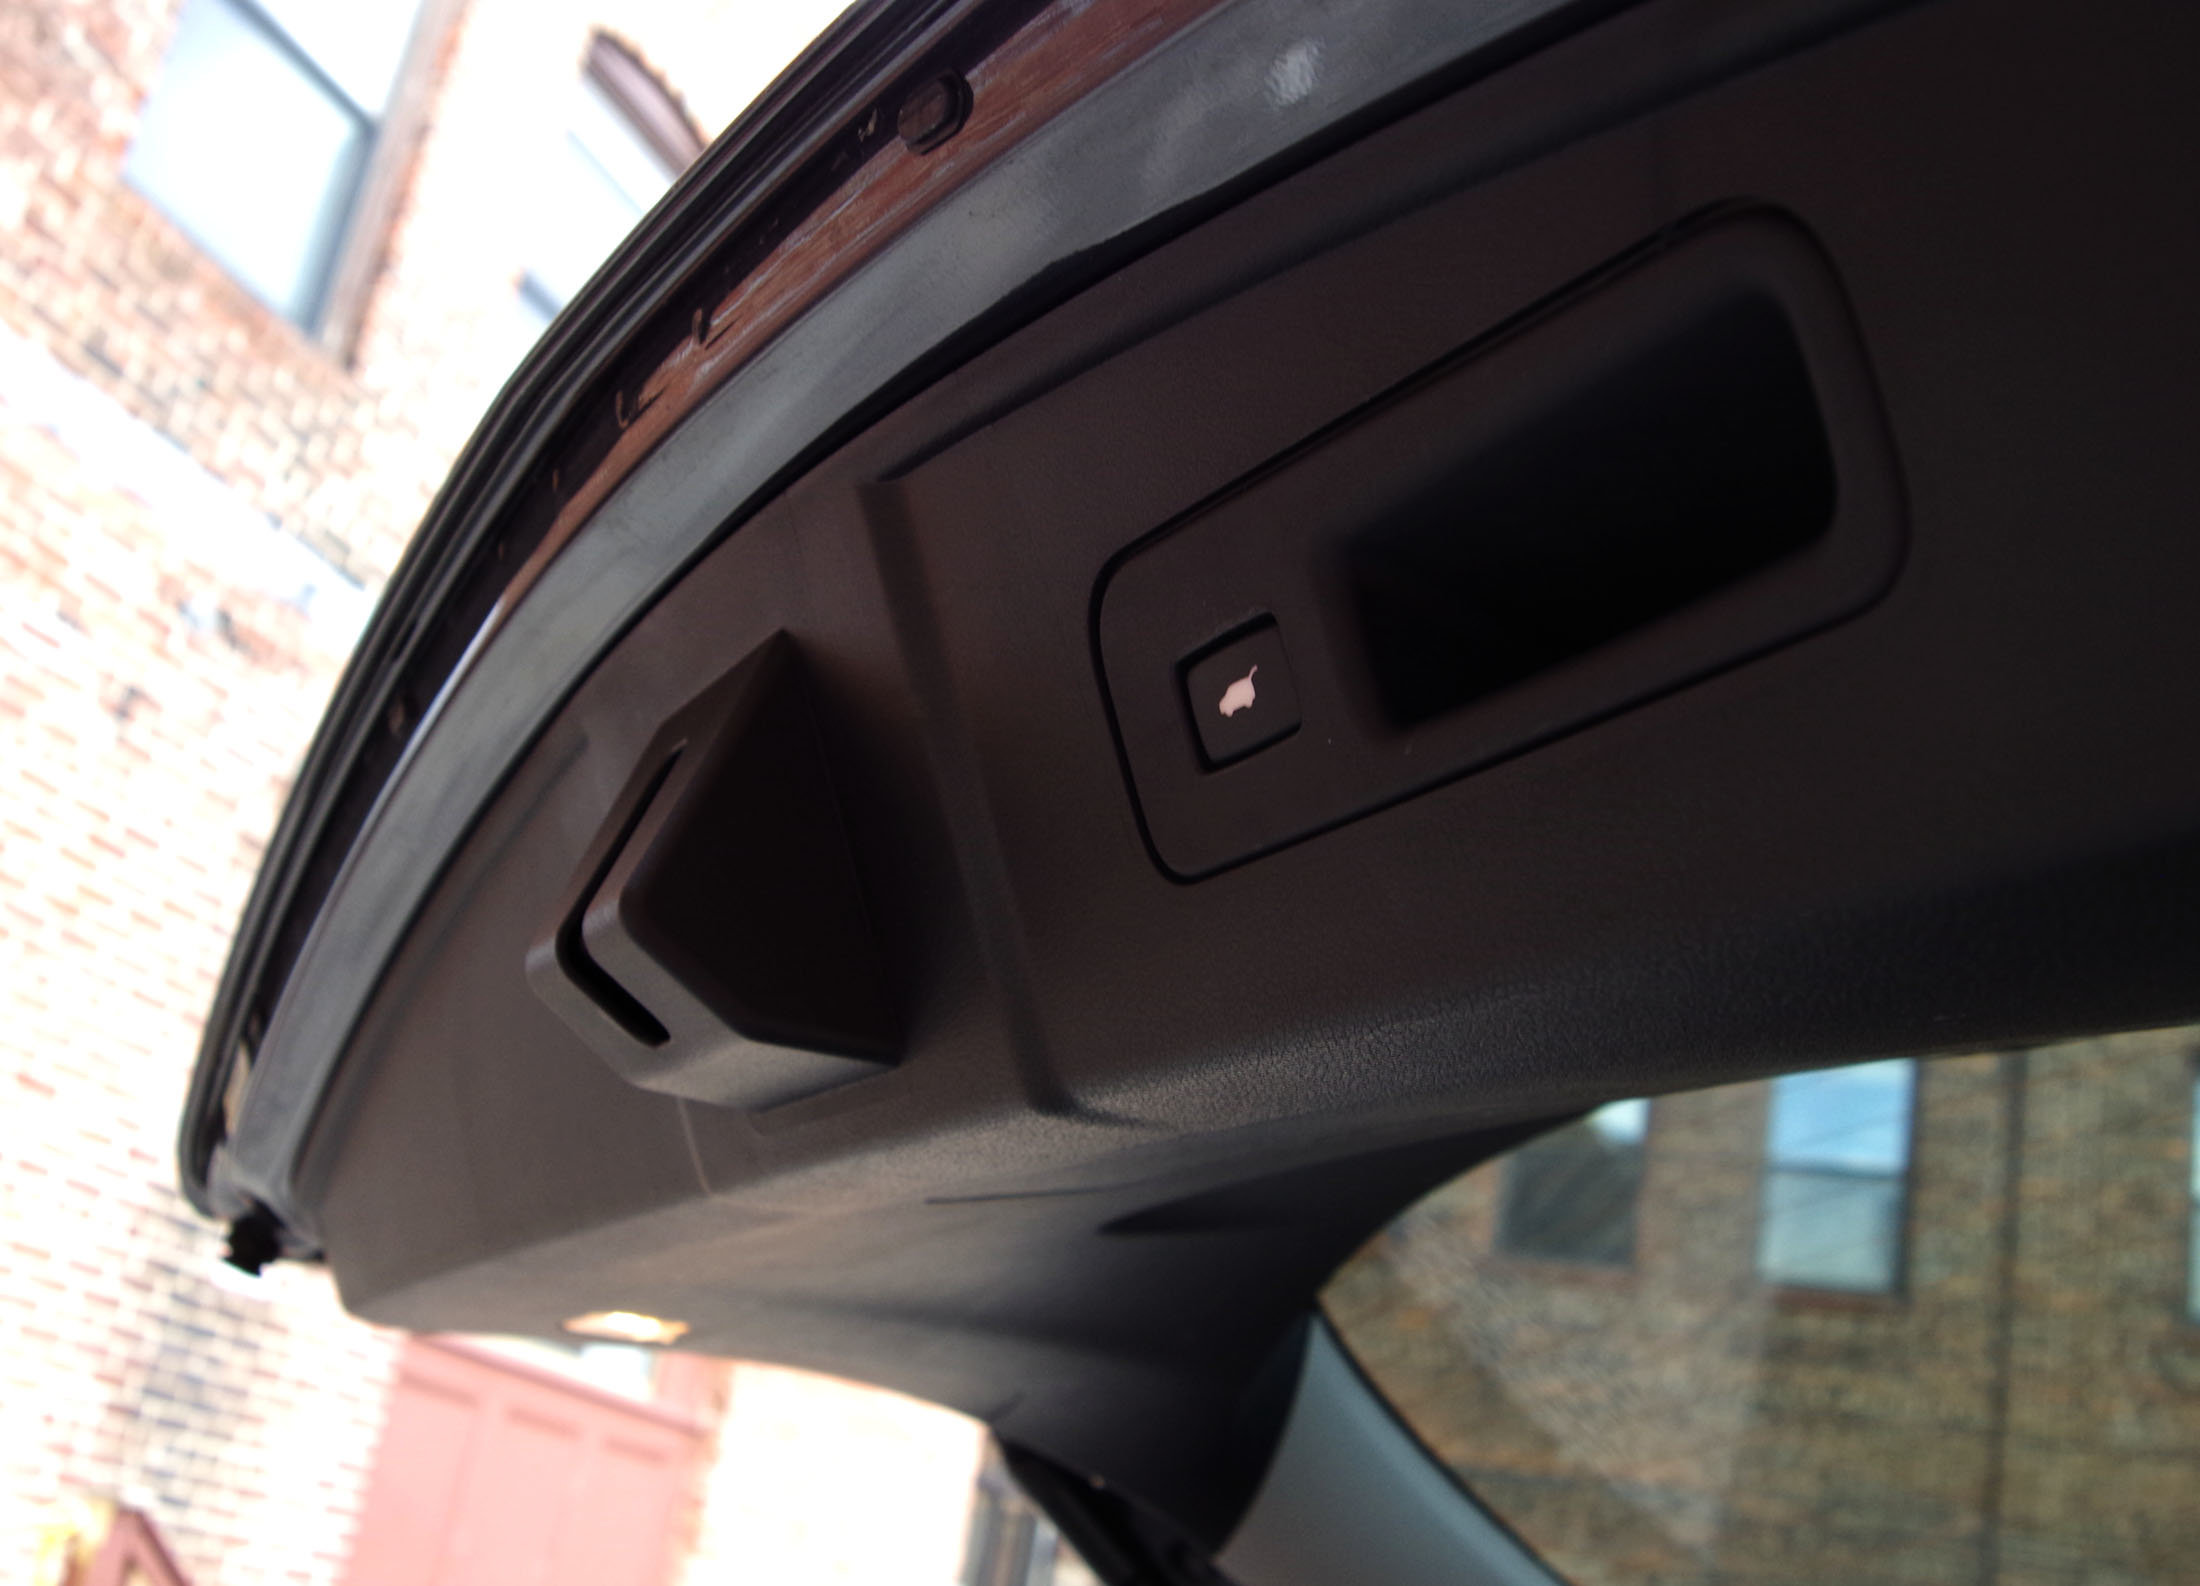 The trunk opens and closes automatically at the touch of a button.